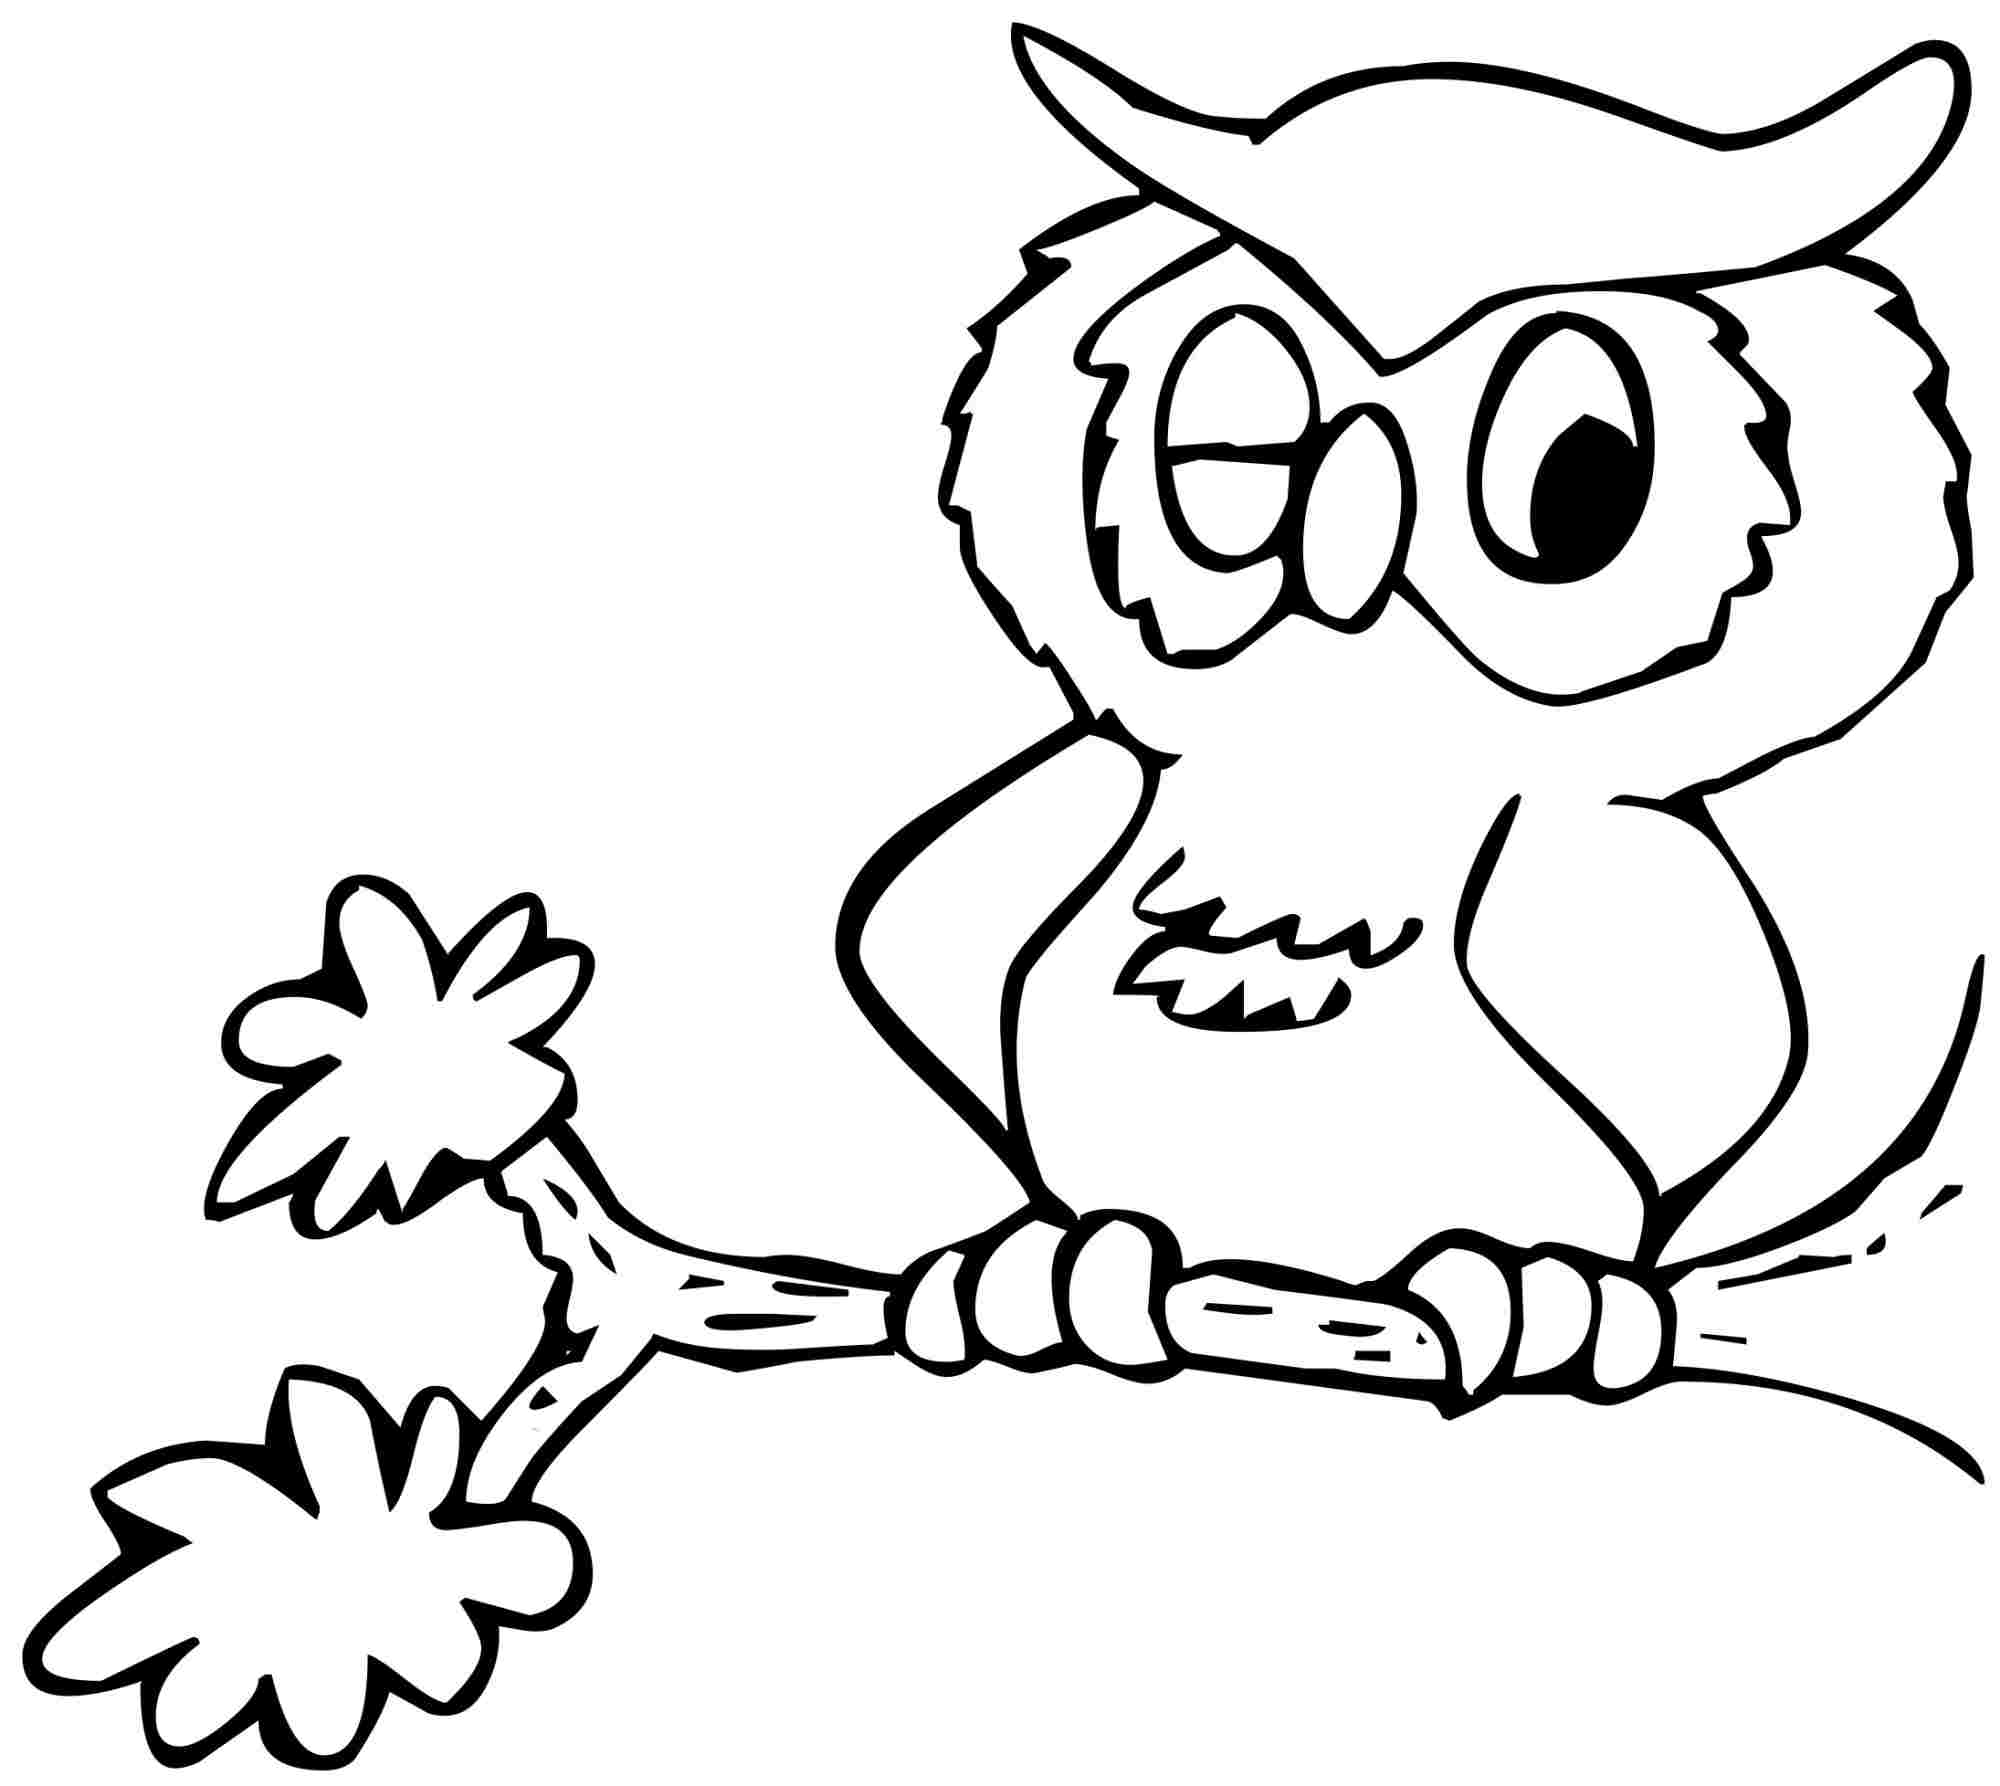 Girl Coloring Pages For Kids at GetDrawings.com | Free for personal ...